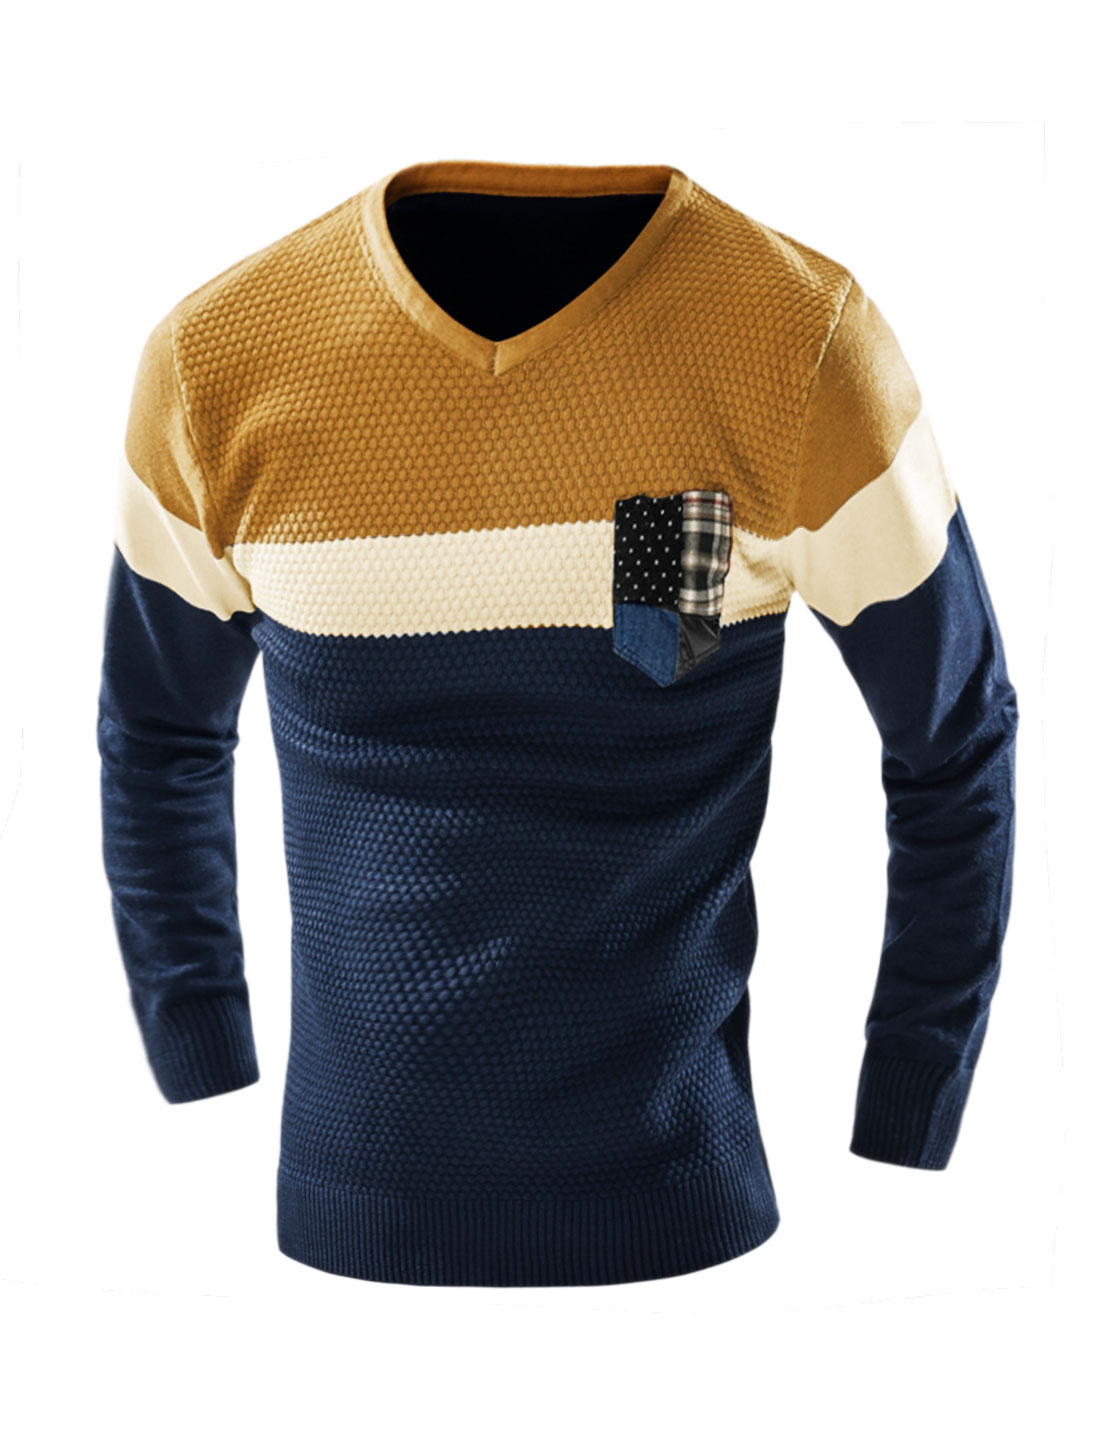 Man V Neck Contrast Color Knit Shirt w Pocket Blue M